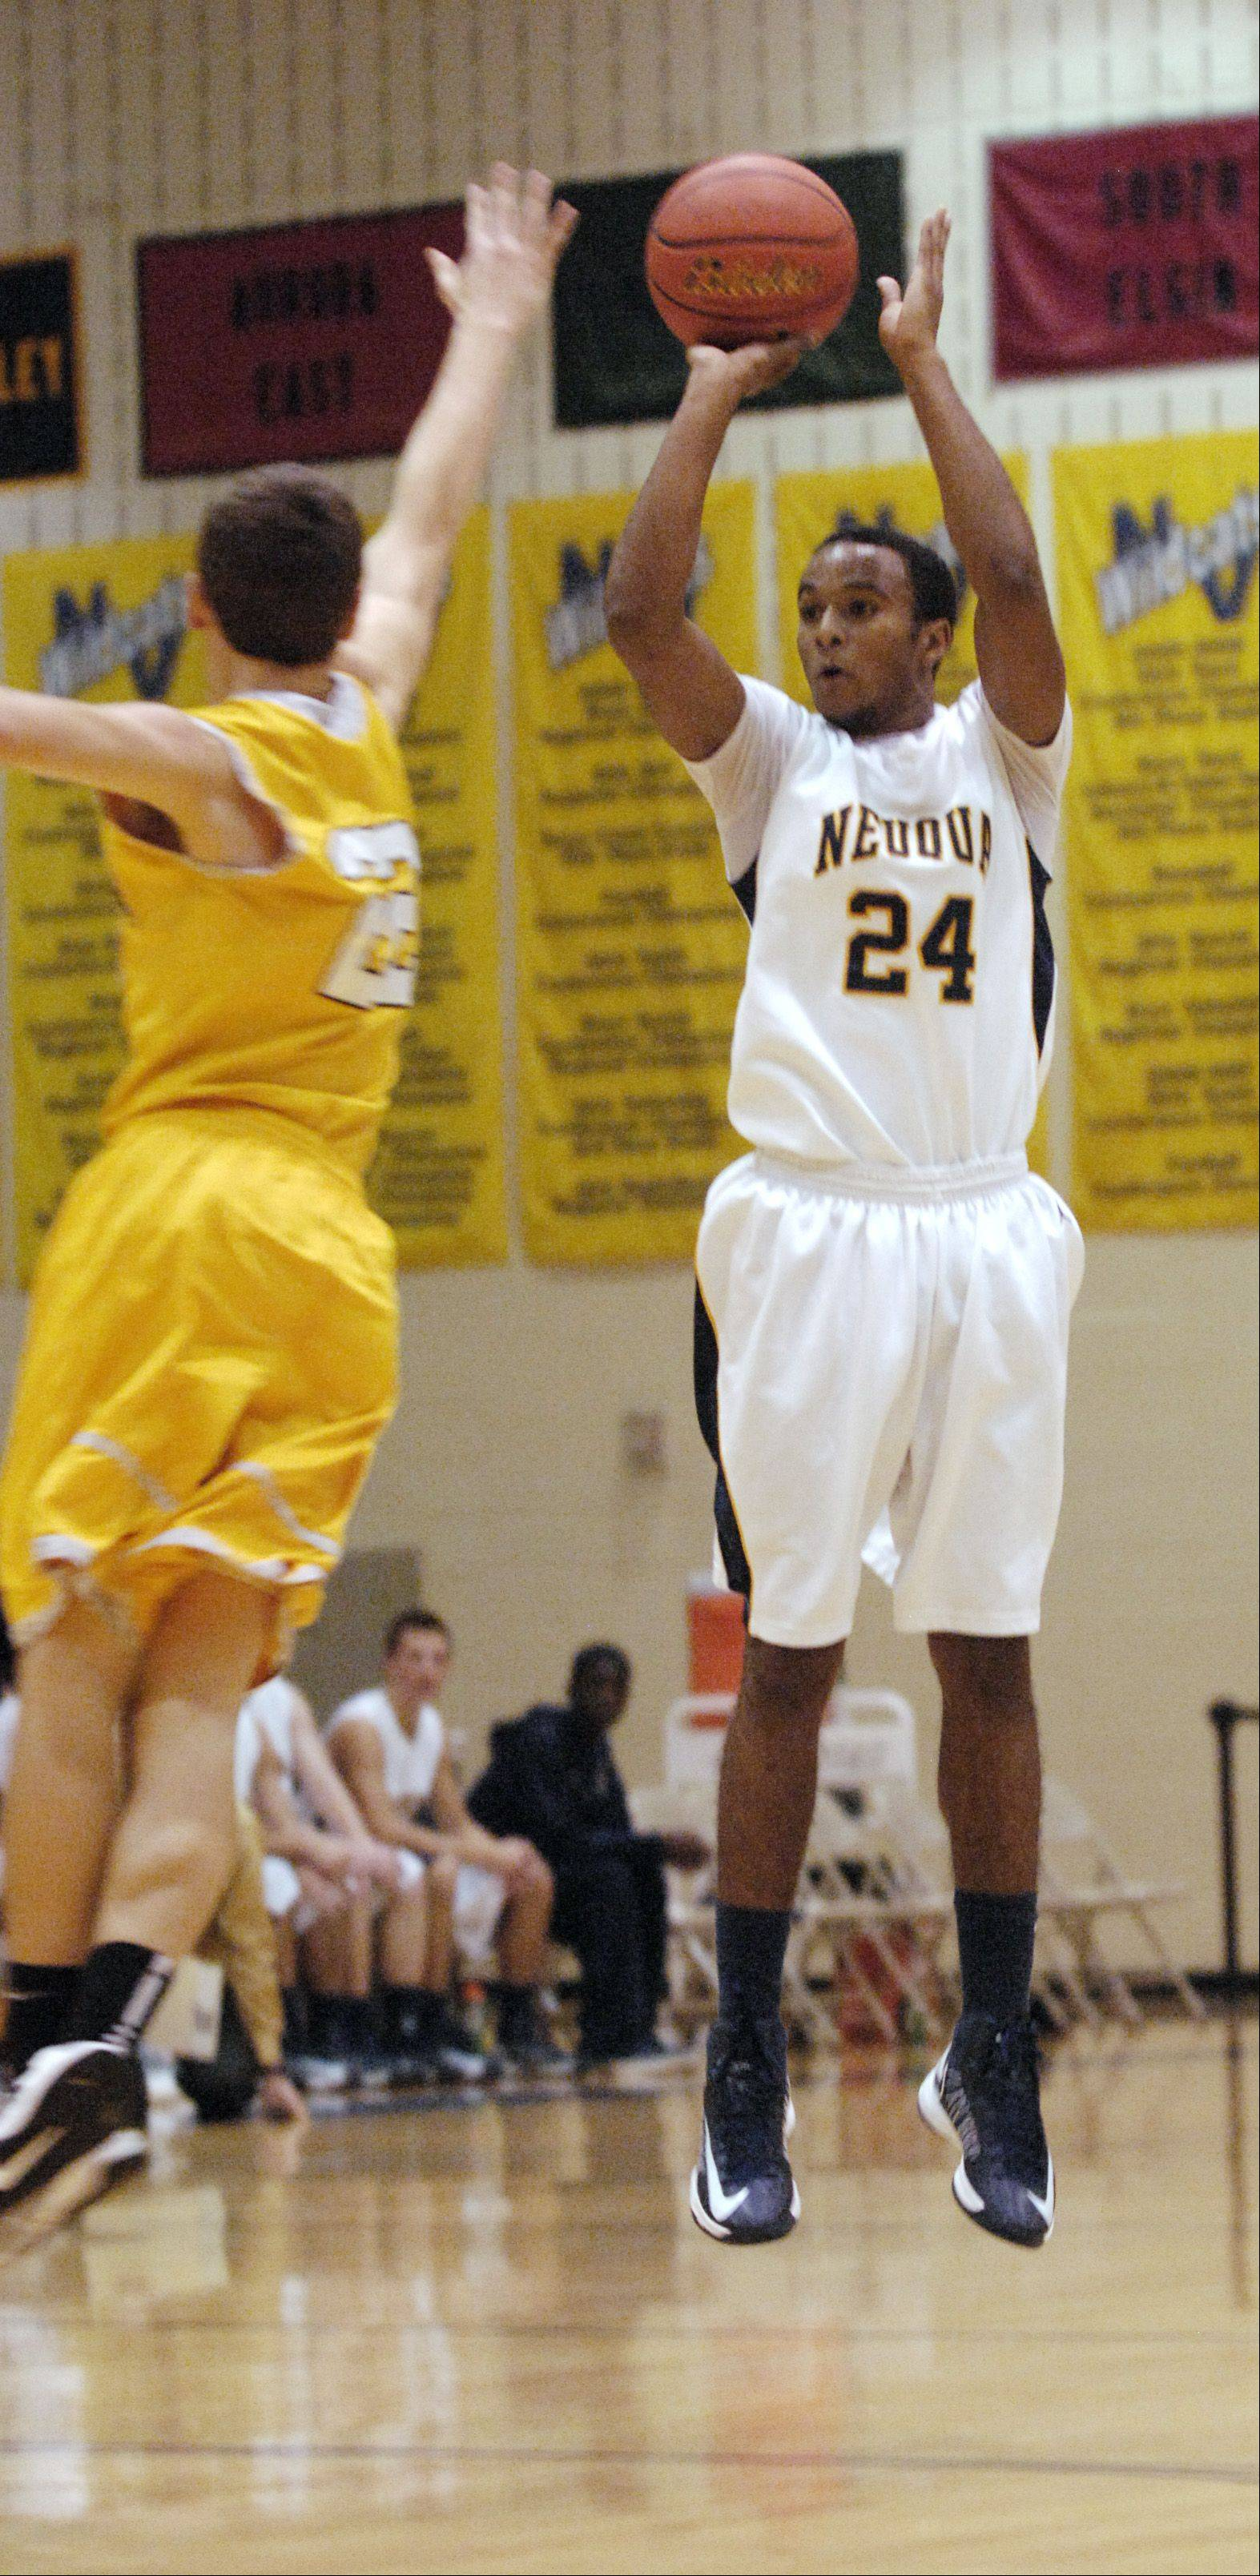 Jabari Sandifer of Neuqua Valley takes a shot over Derek Coleman of Metea Valley.